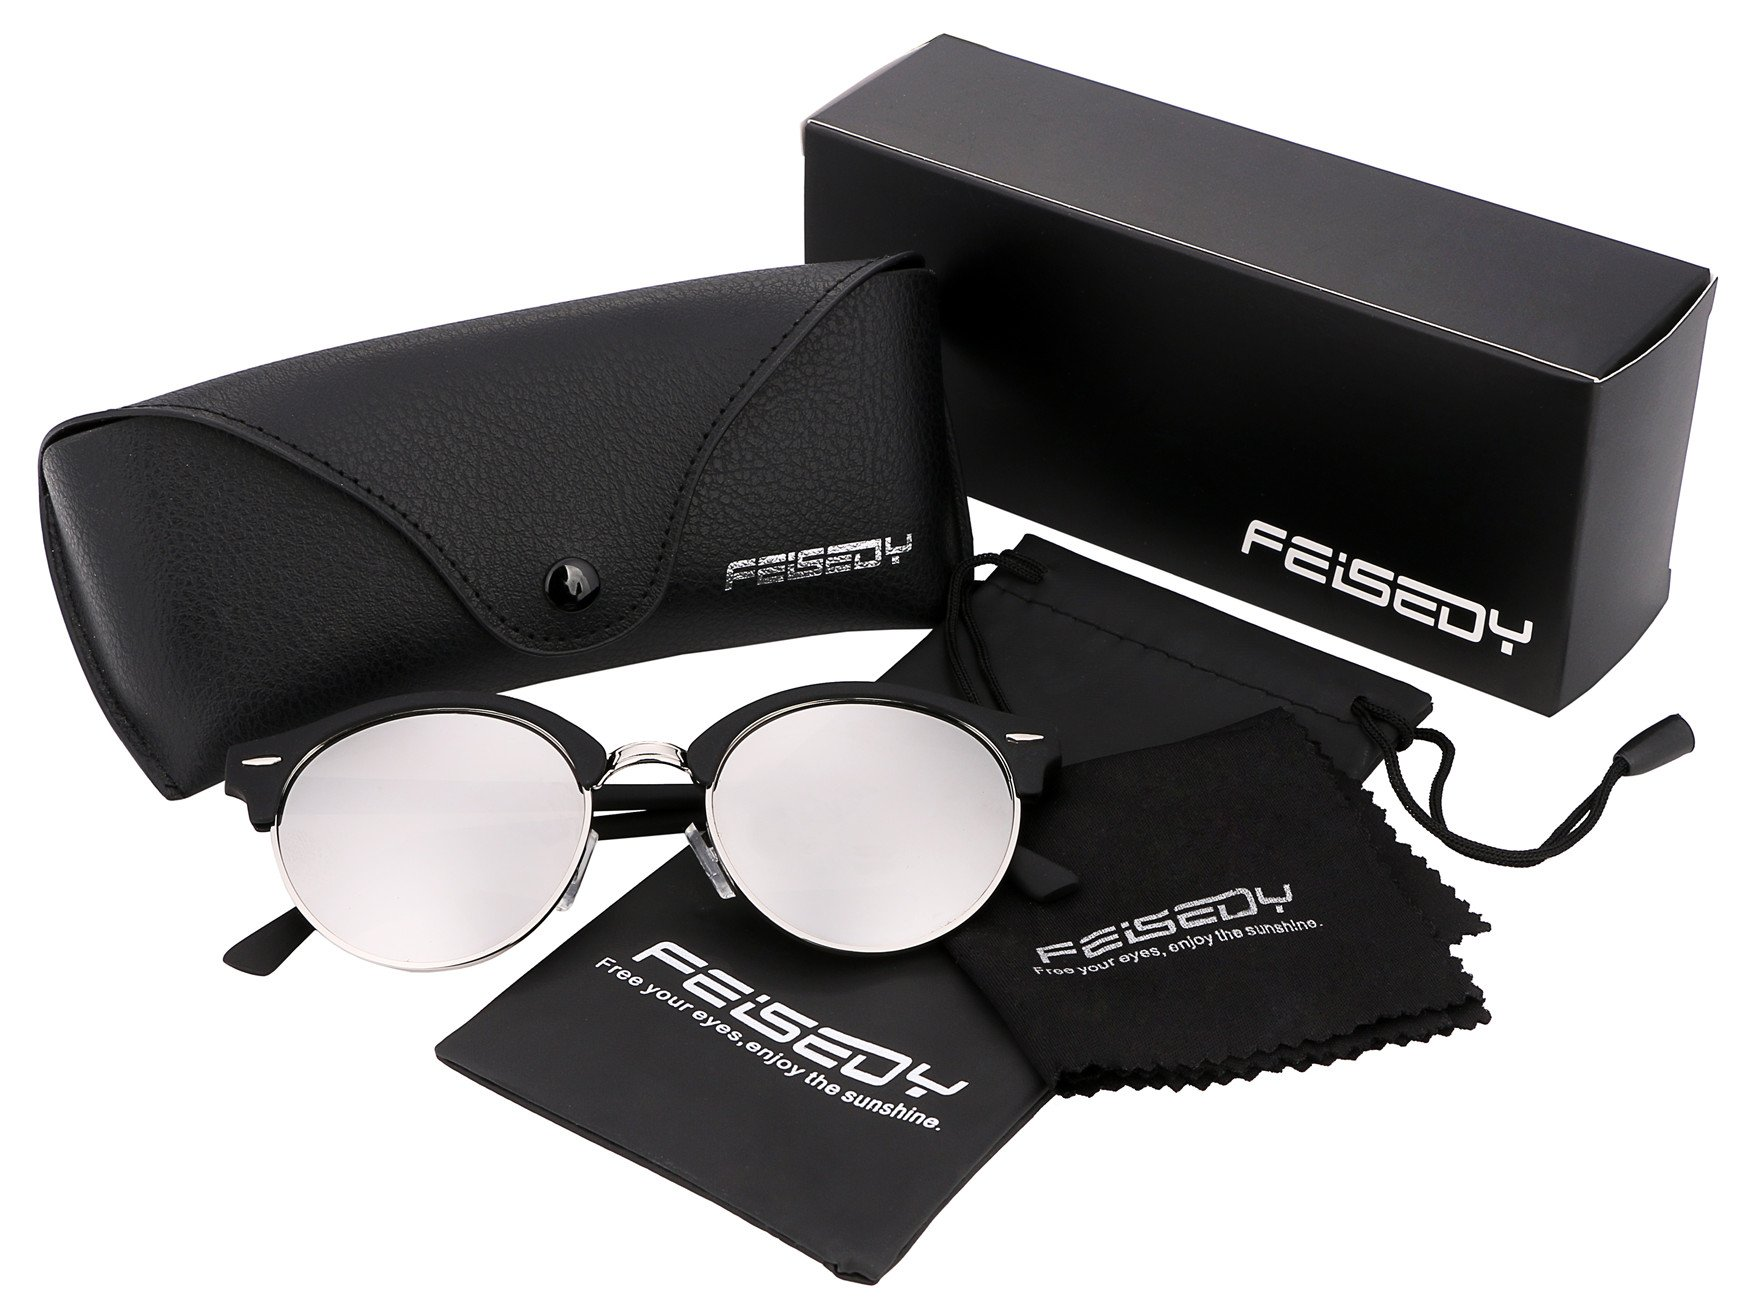 FEISEDY Classic Semi-rimless Round Frame Plastic Lens Sunglasses for Men Women B1882 by FEISEDY (Image #5)